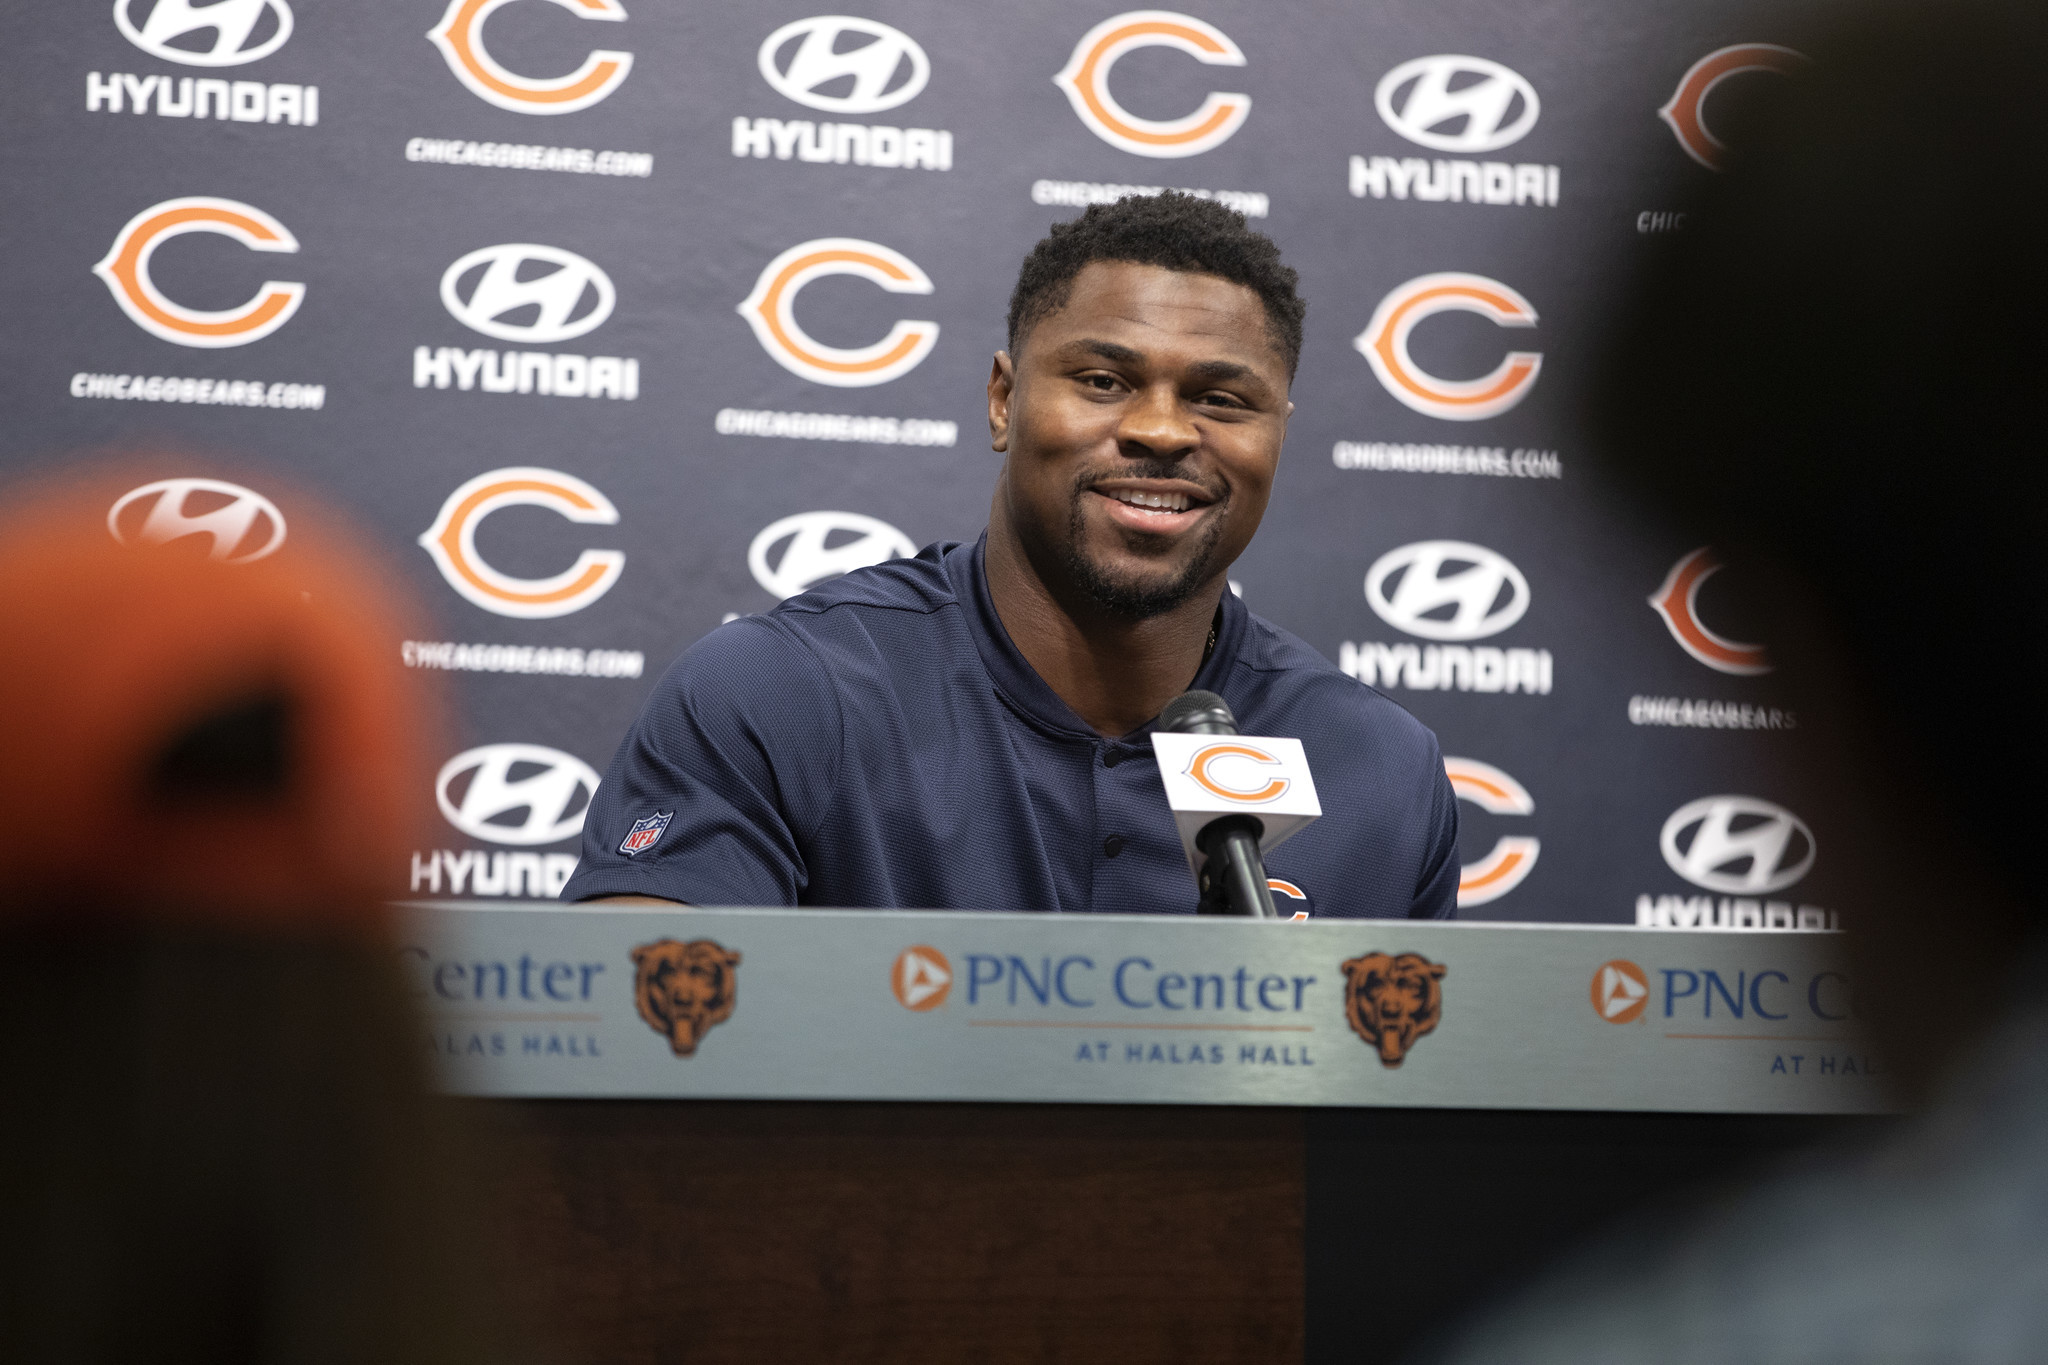 a0b4813b550 Khalil Mack speaks at his introductory press conference (Erin  Hooley/Chicago Tribune)